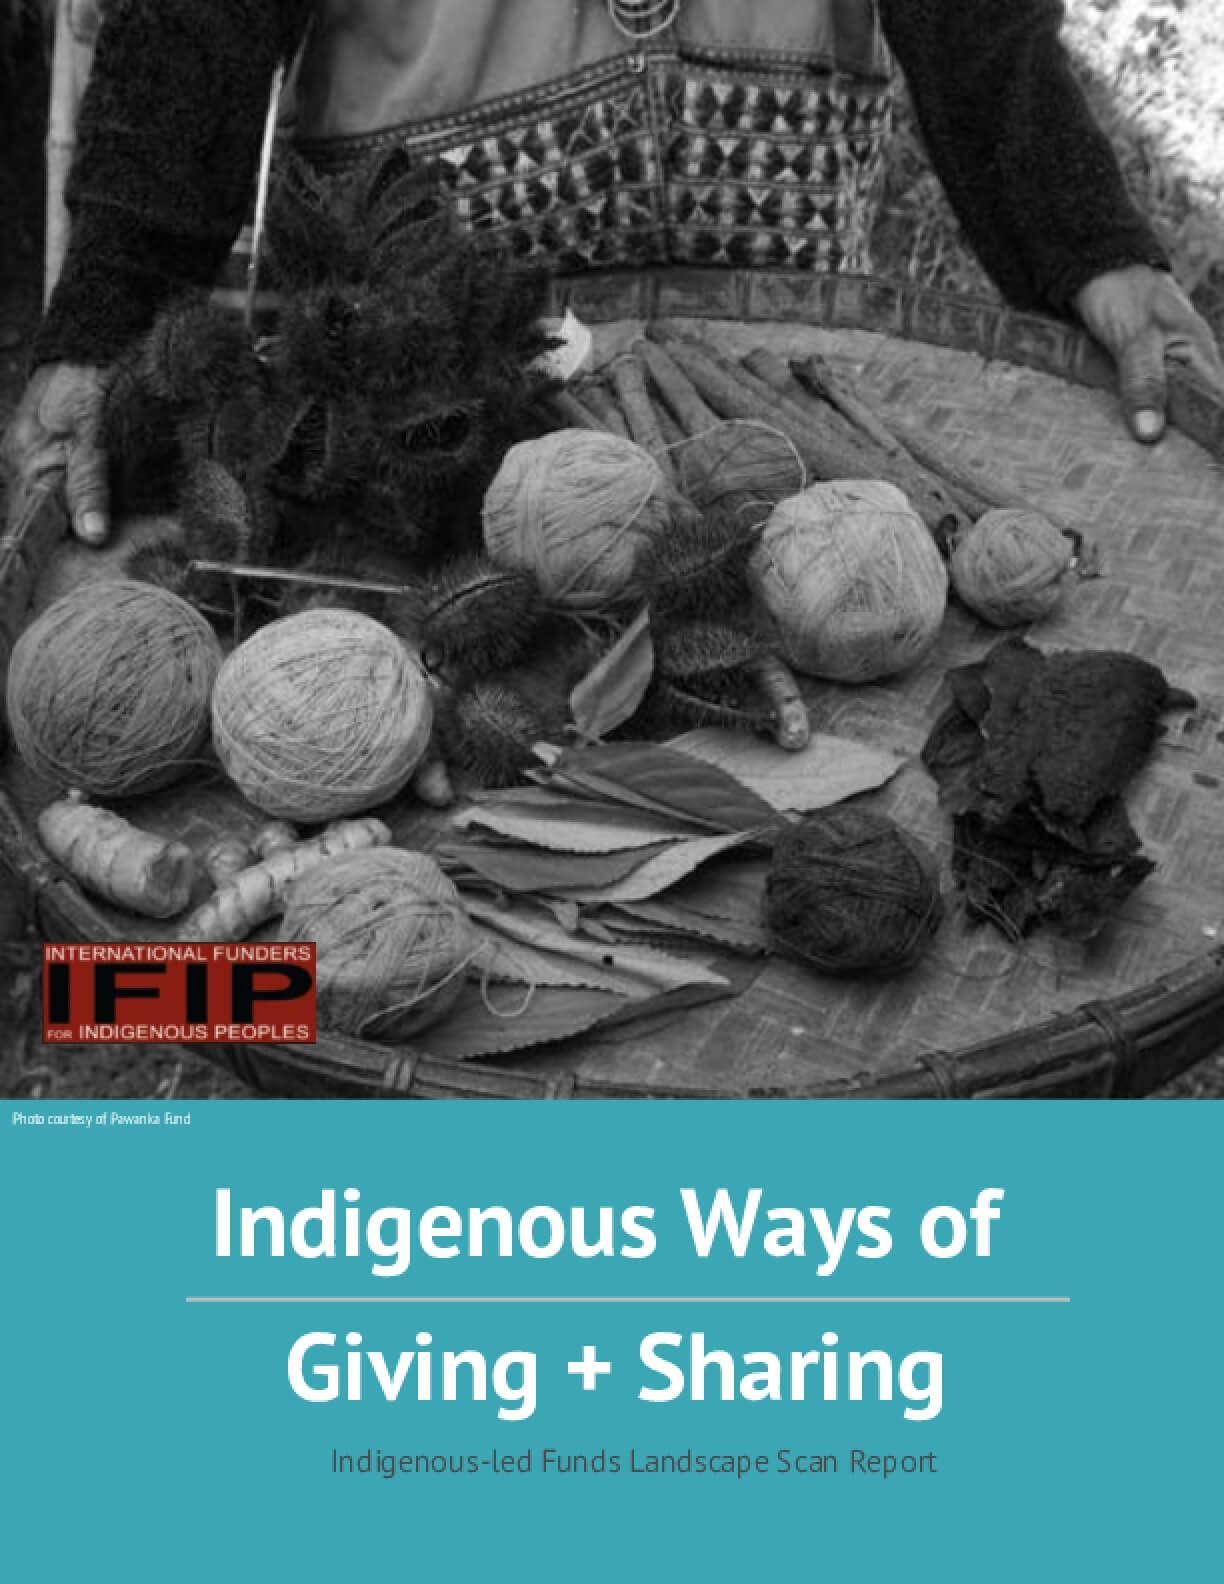 Indigenous Ways of Giving + Sharing